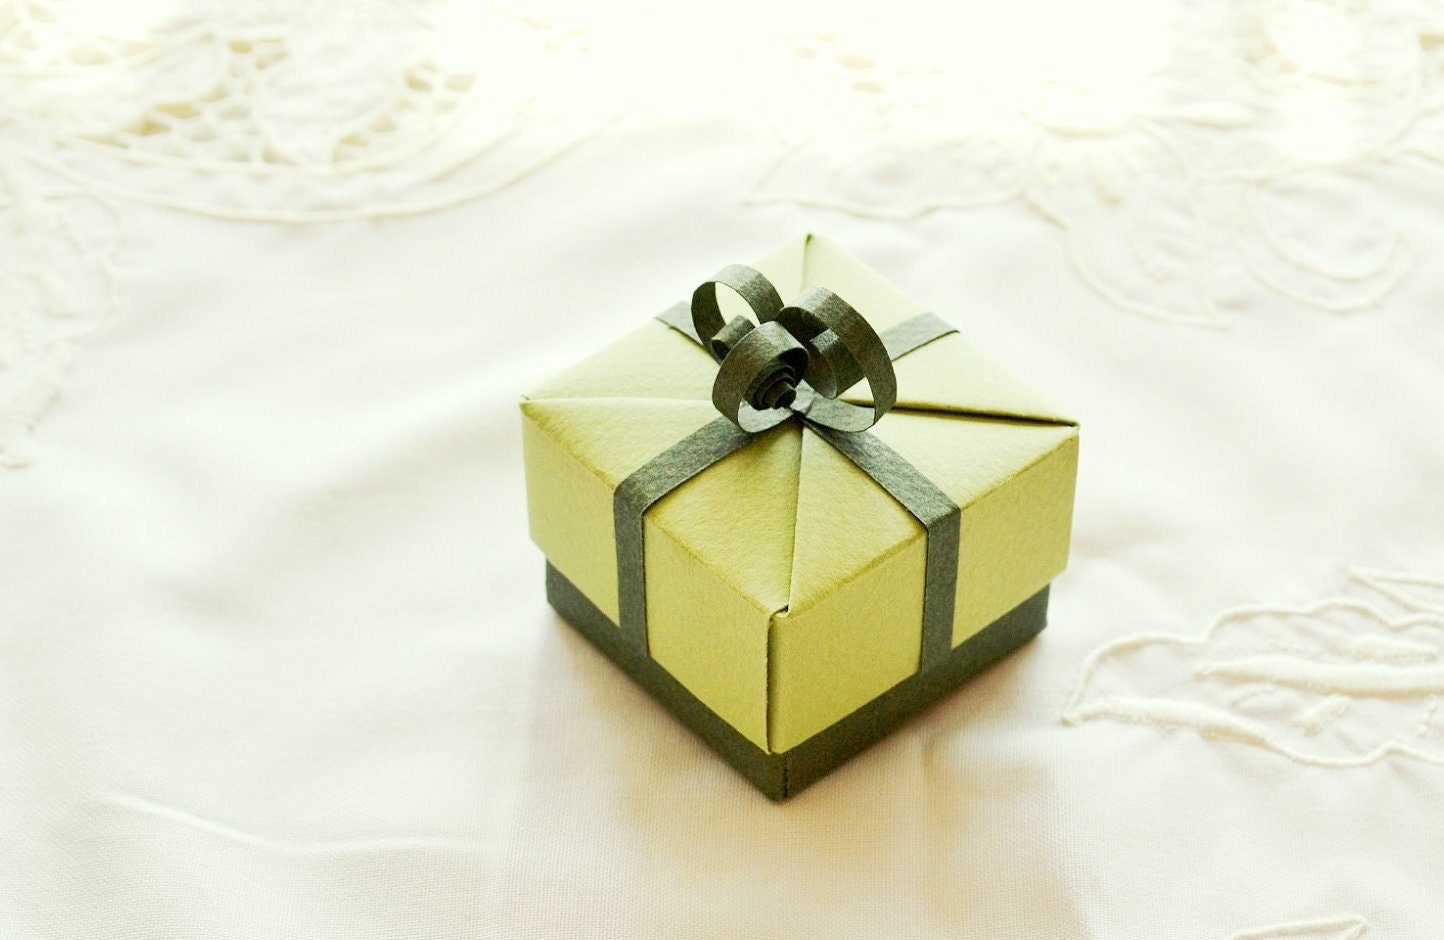 Items similar to Small Green Origami Gift Box, Unique ...